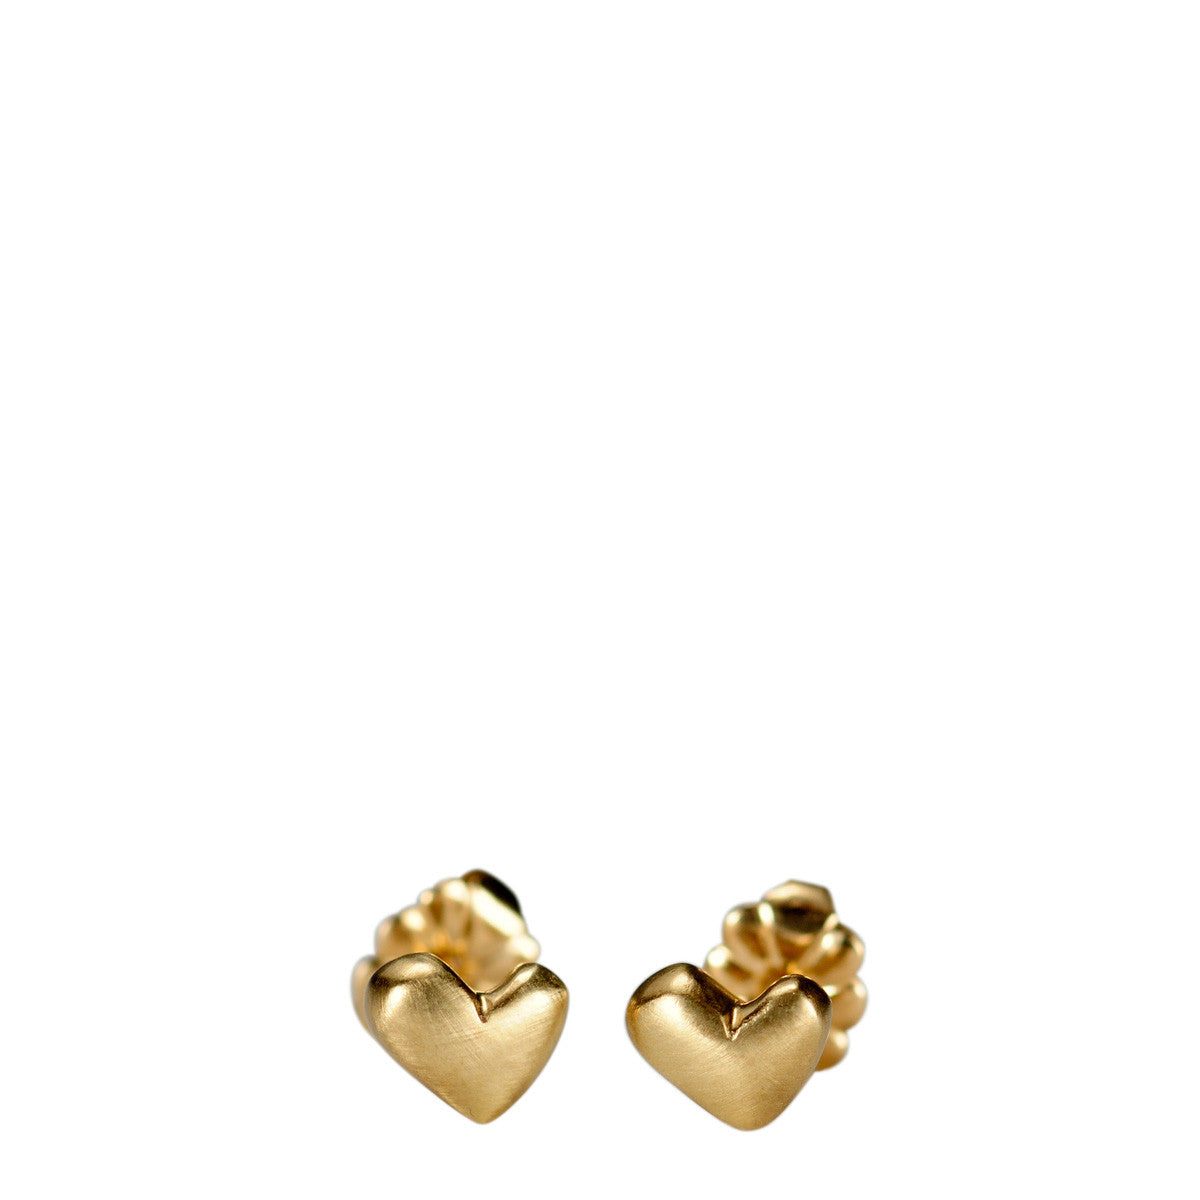 10K Gold Heart Stud Earrings